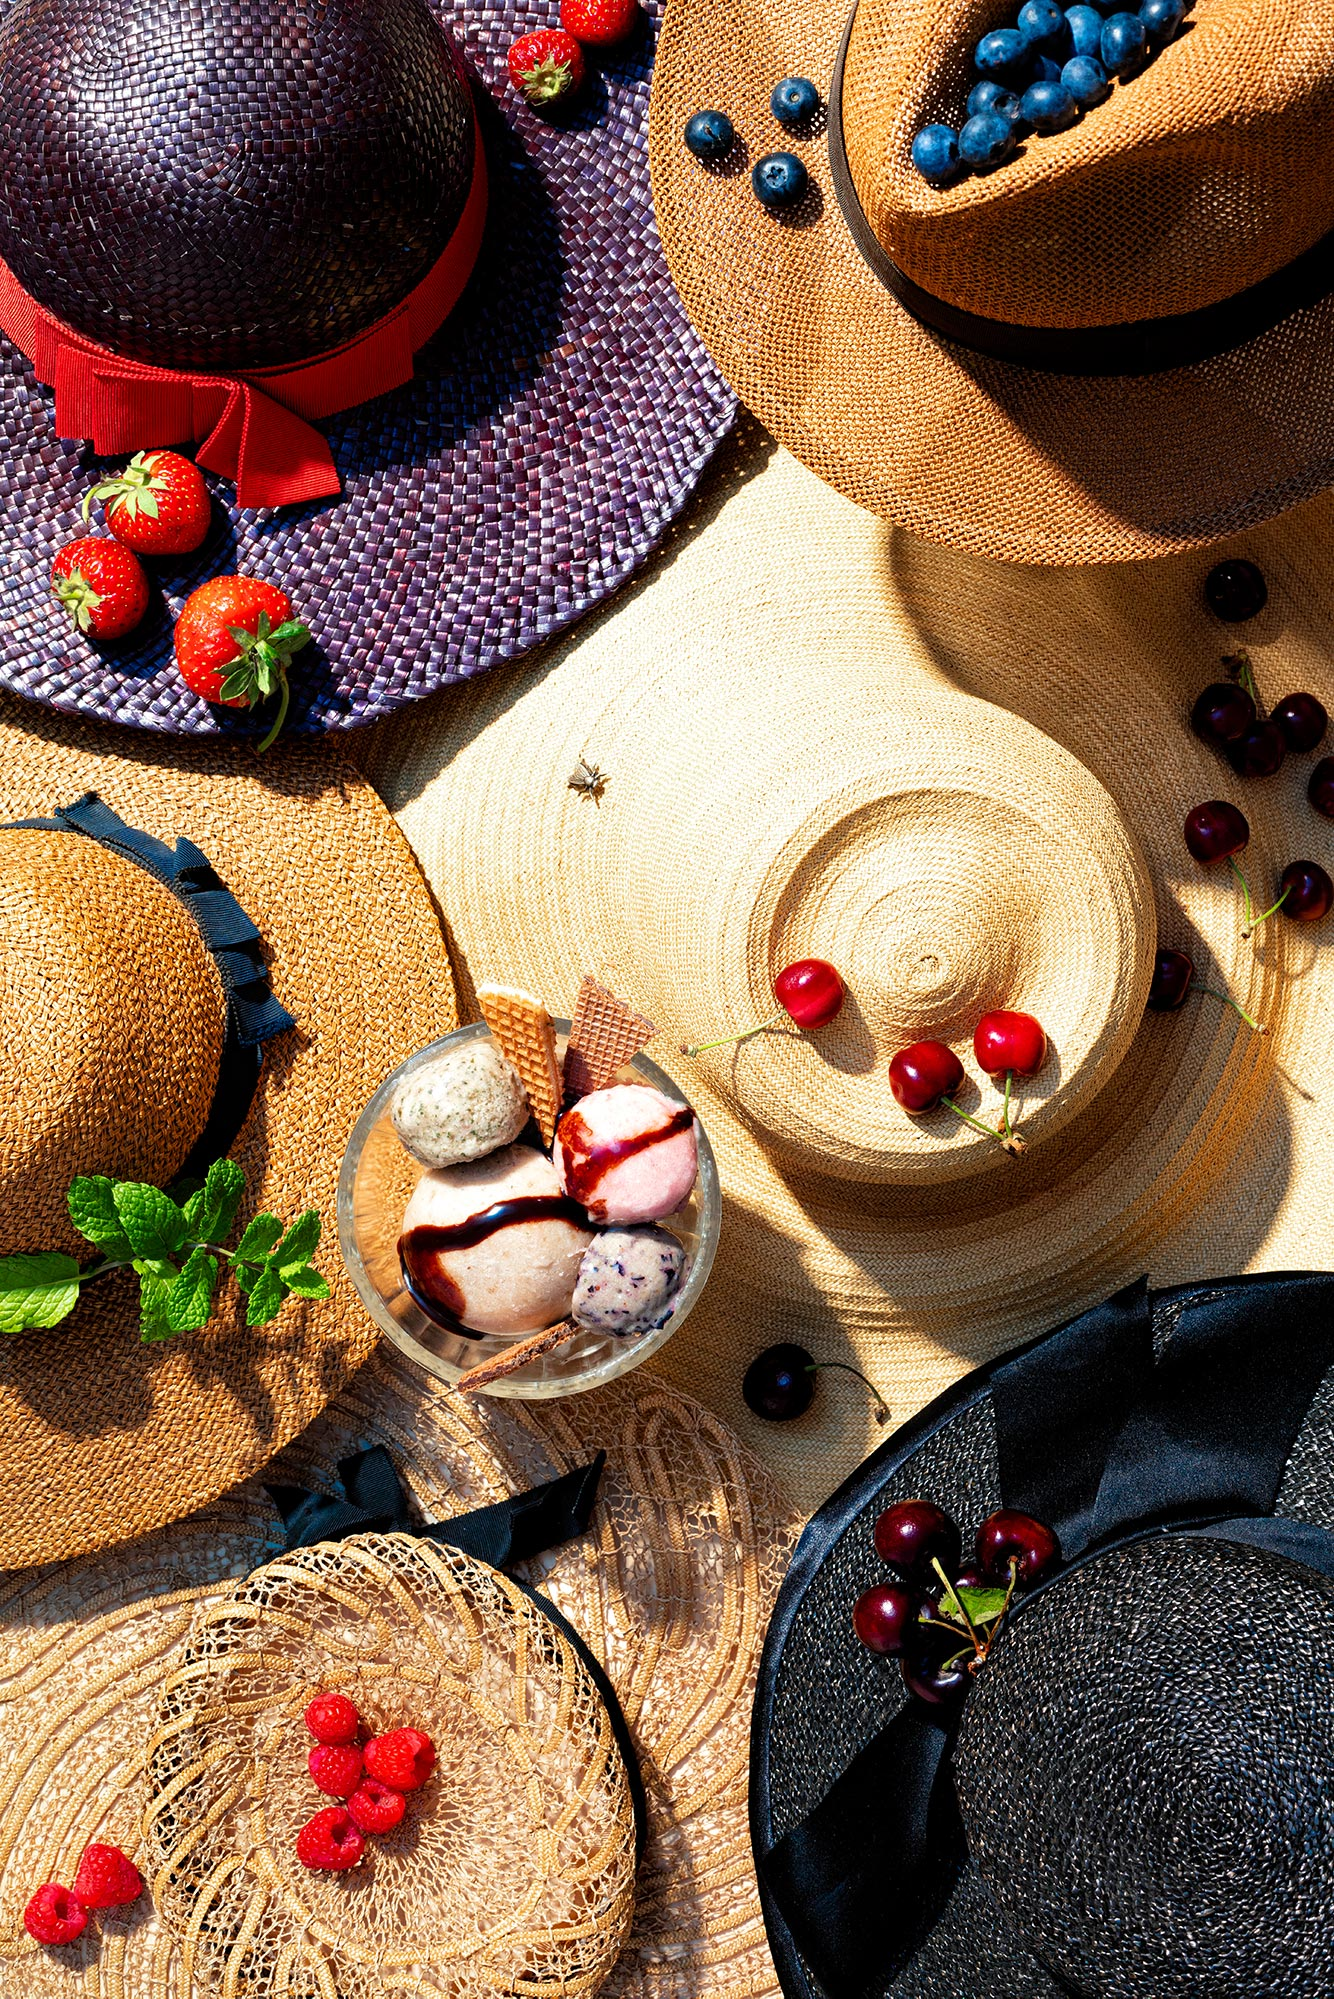 Fashion meets Food. Six summer hats in different colors and shapes are put together, lit in afternoon summer light. On them there are strawberries, blueberries, cherries and raspberries as well as a dish of ice cream arranged.